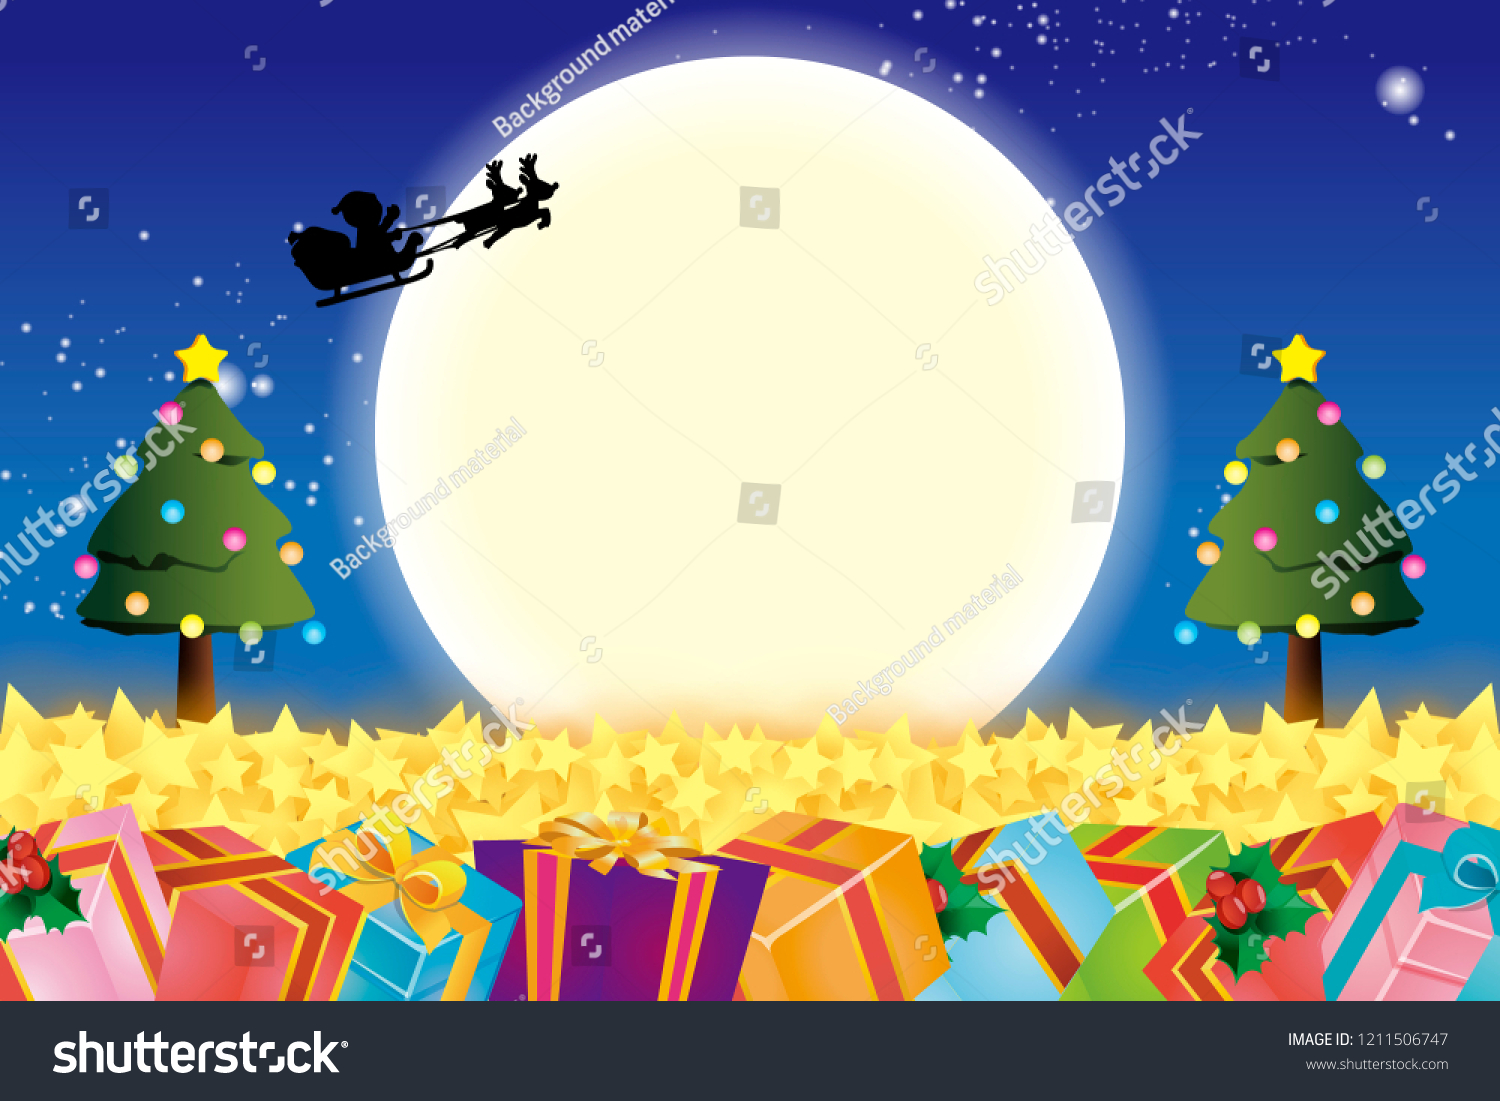 Christmas Gift Sale Winter Event Christian Stock Vector (Royalty ...